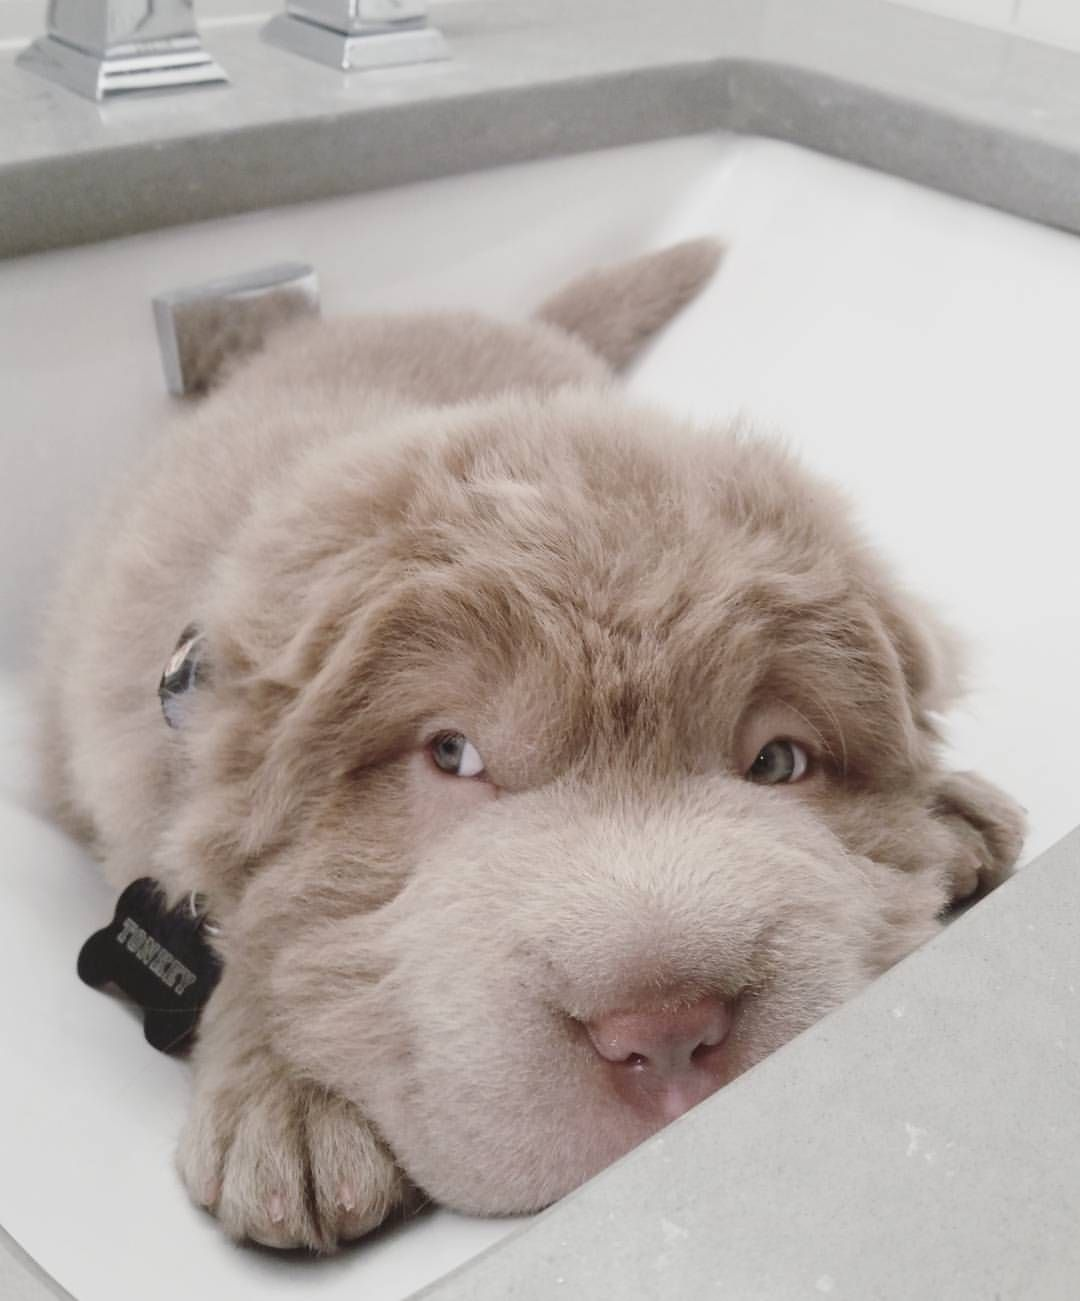 images Tonkey Bear: The Dog That Will Melt Even The Most Dedicated Cat Lover's Heart